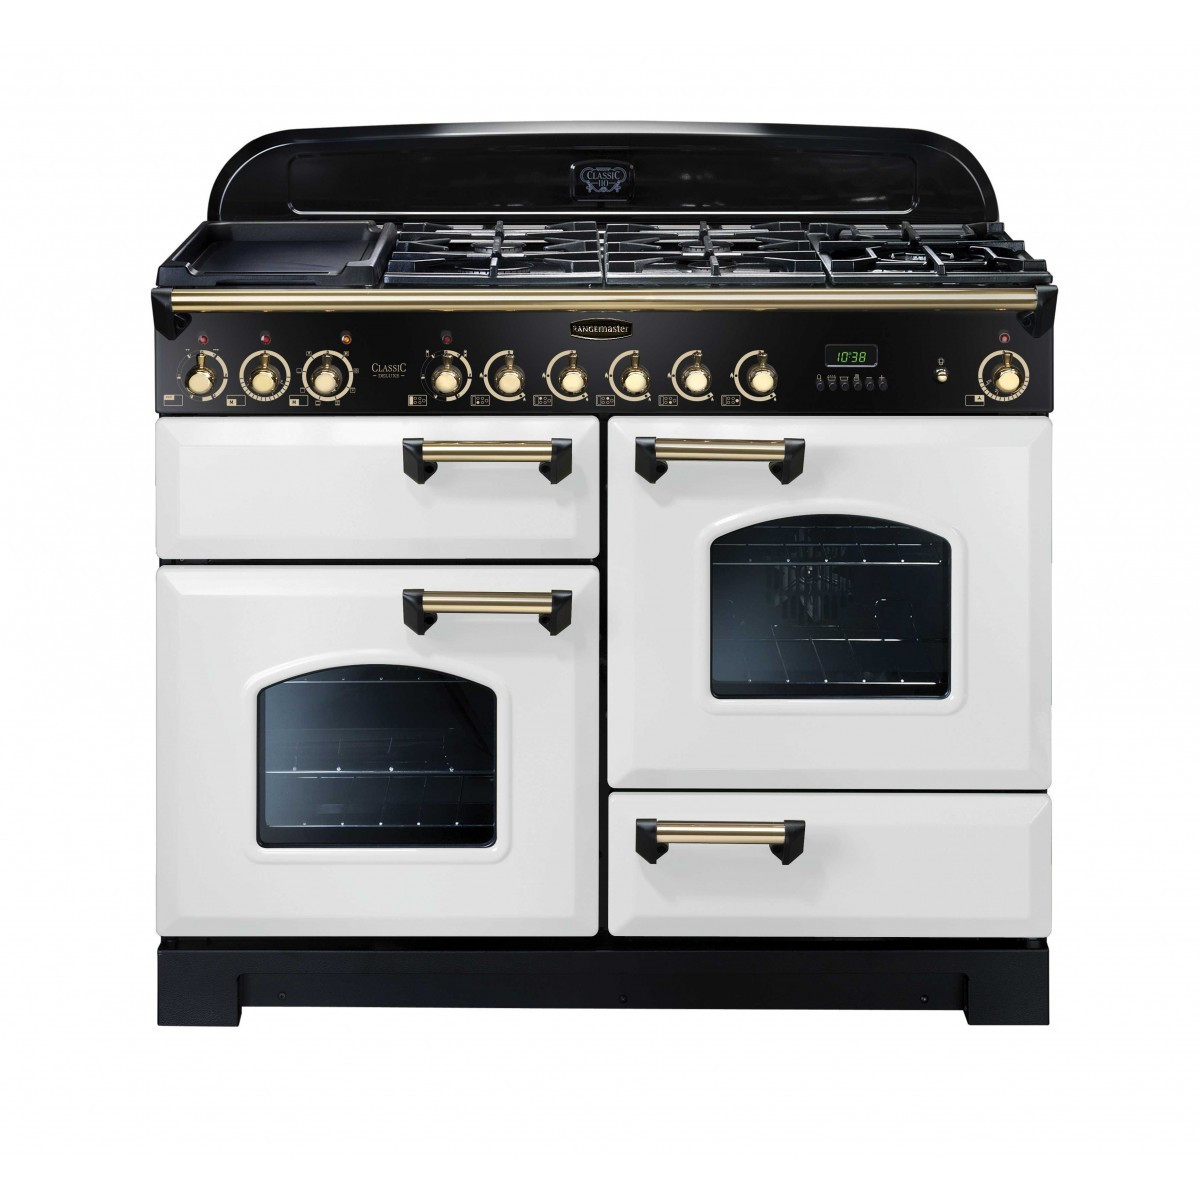 Rangemaster Classic Deluxe 110 Dual Fuel White/Brass Trim Range Cooker CDL110DFFWH/B 112940